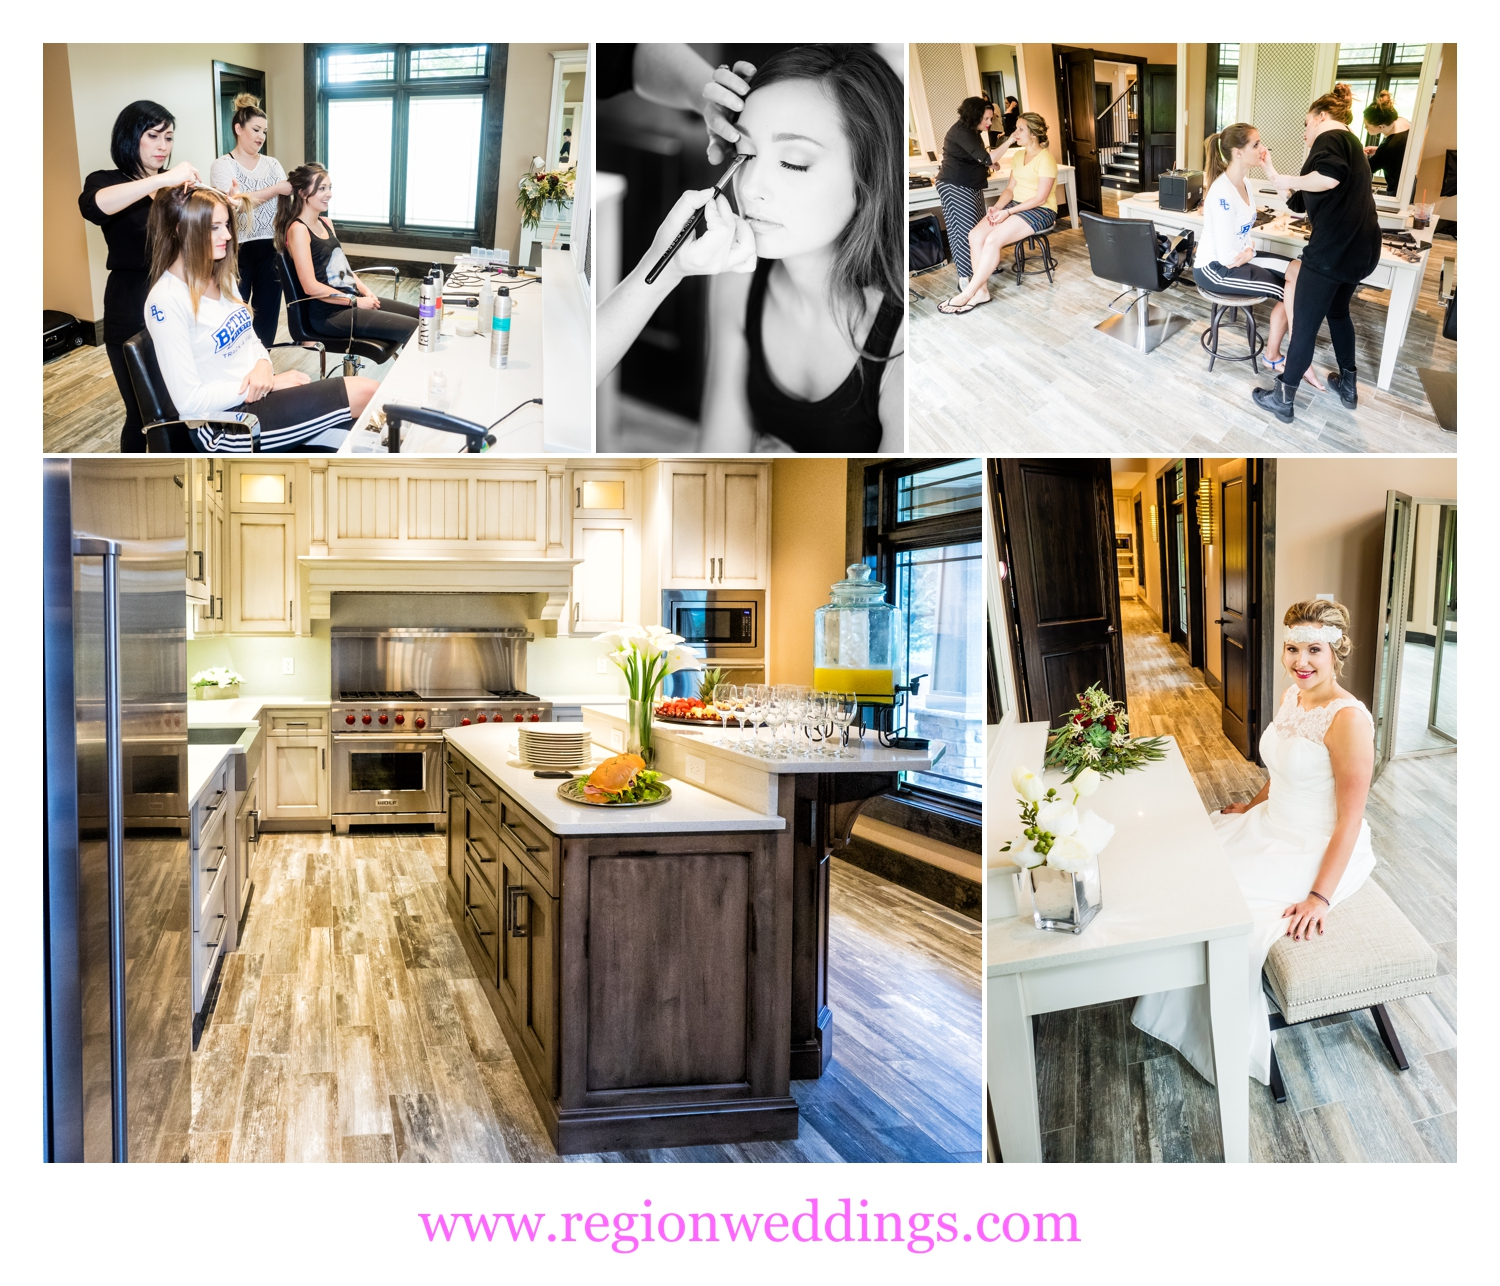 Stylists from LeRoc Salon do bridal prep inside the new bridal suite at Sandy Pines.